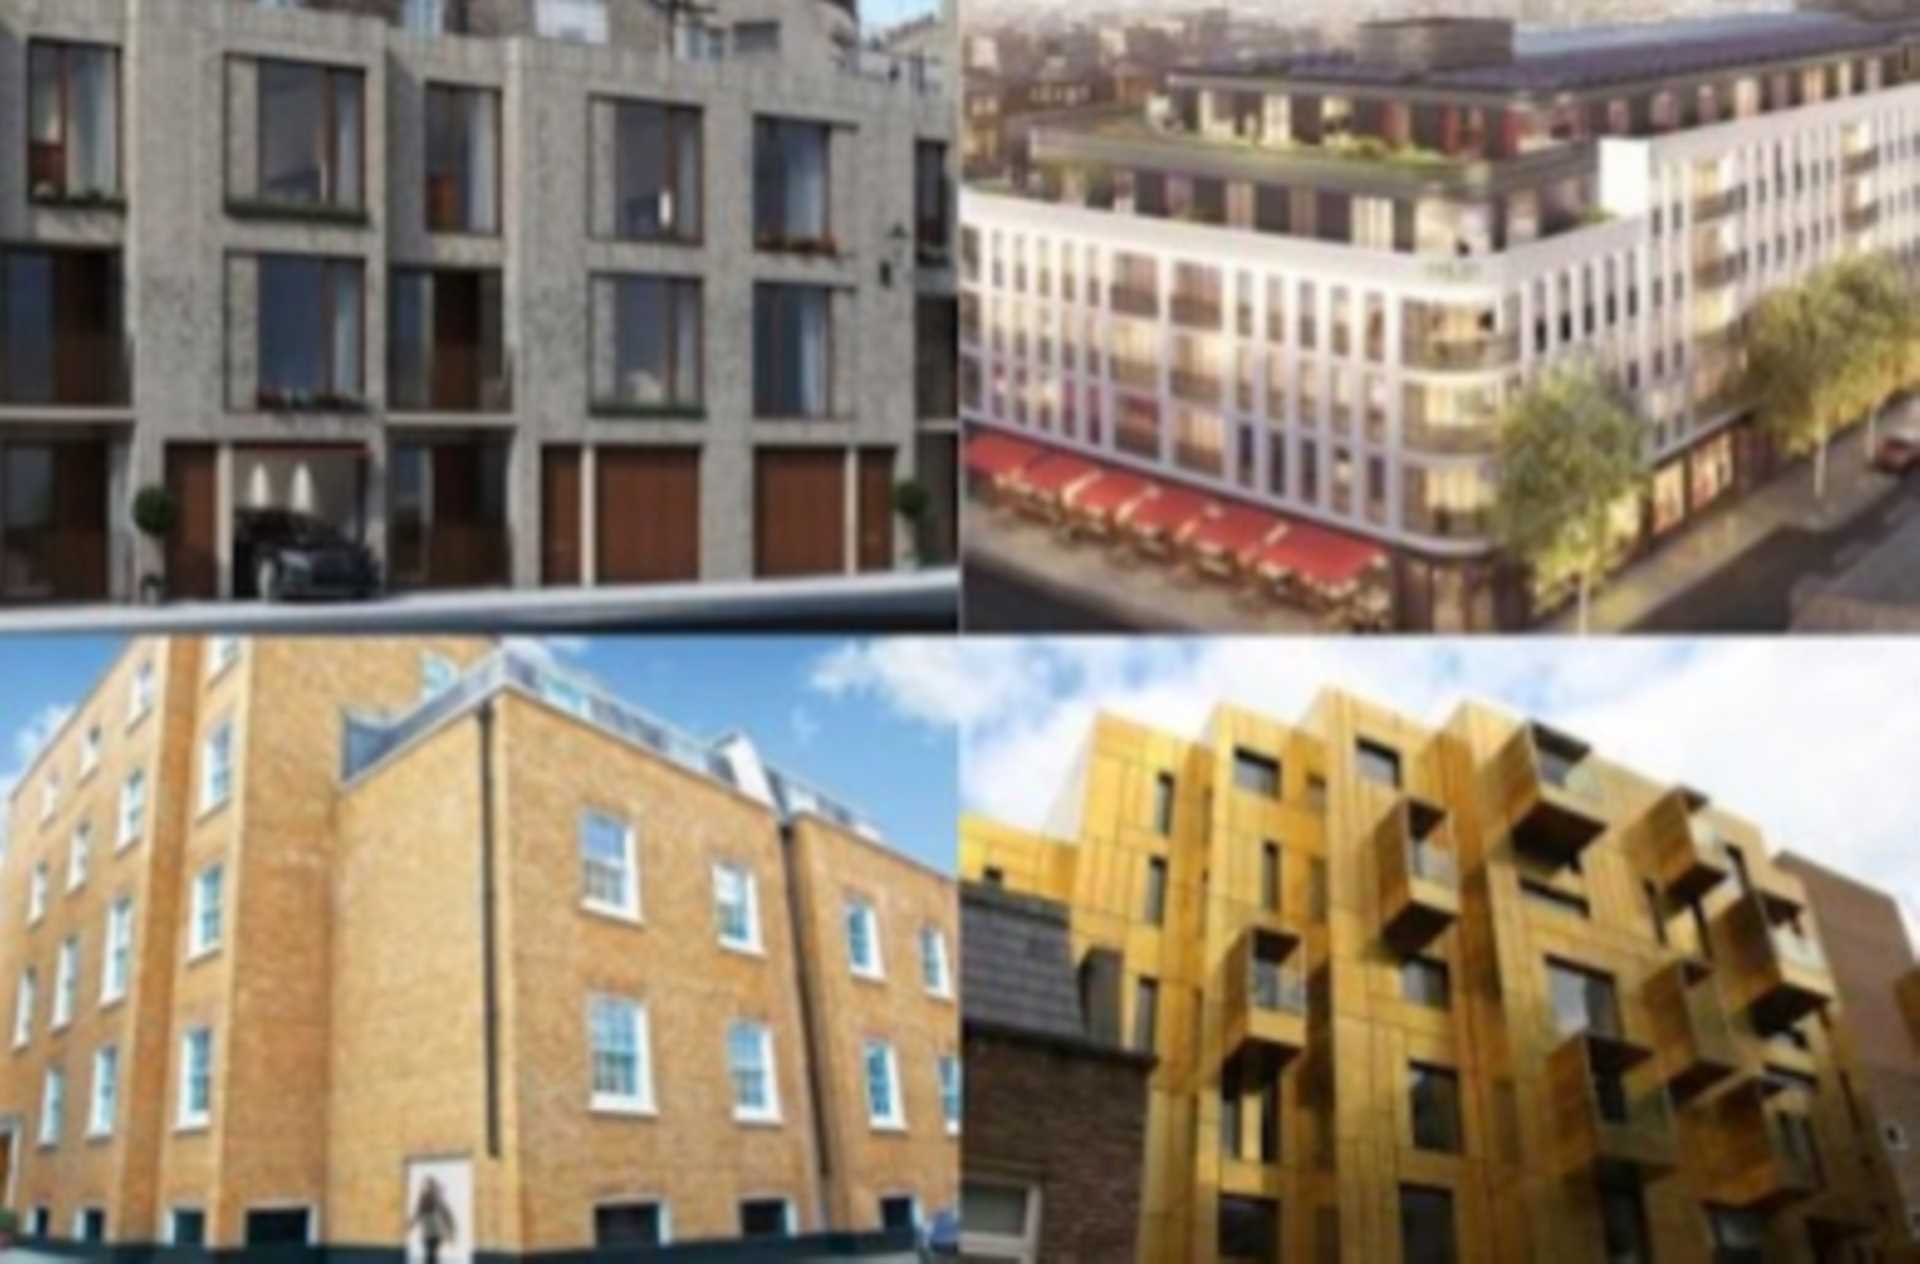 Time for some more existing 'new home` developments found in Marylebone, as well as some new housing projects that will be entering the property market very soon!